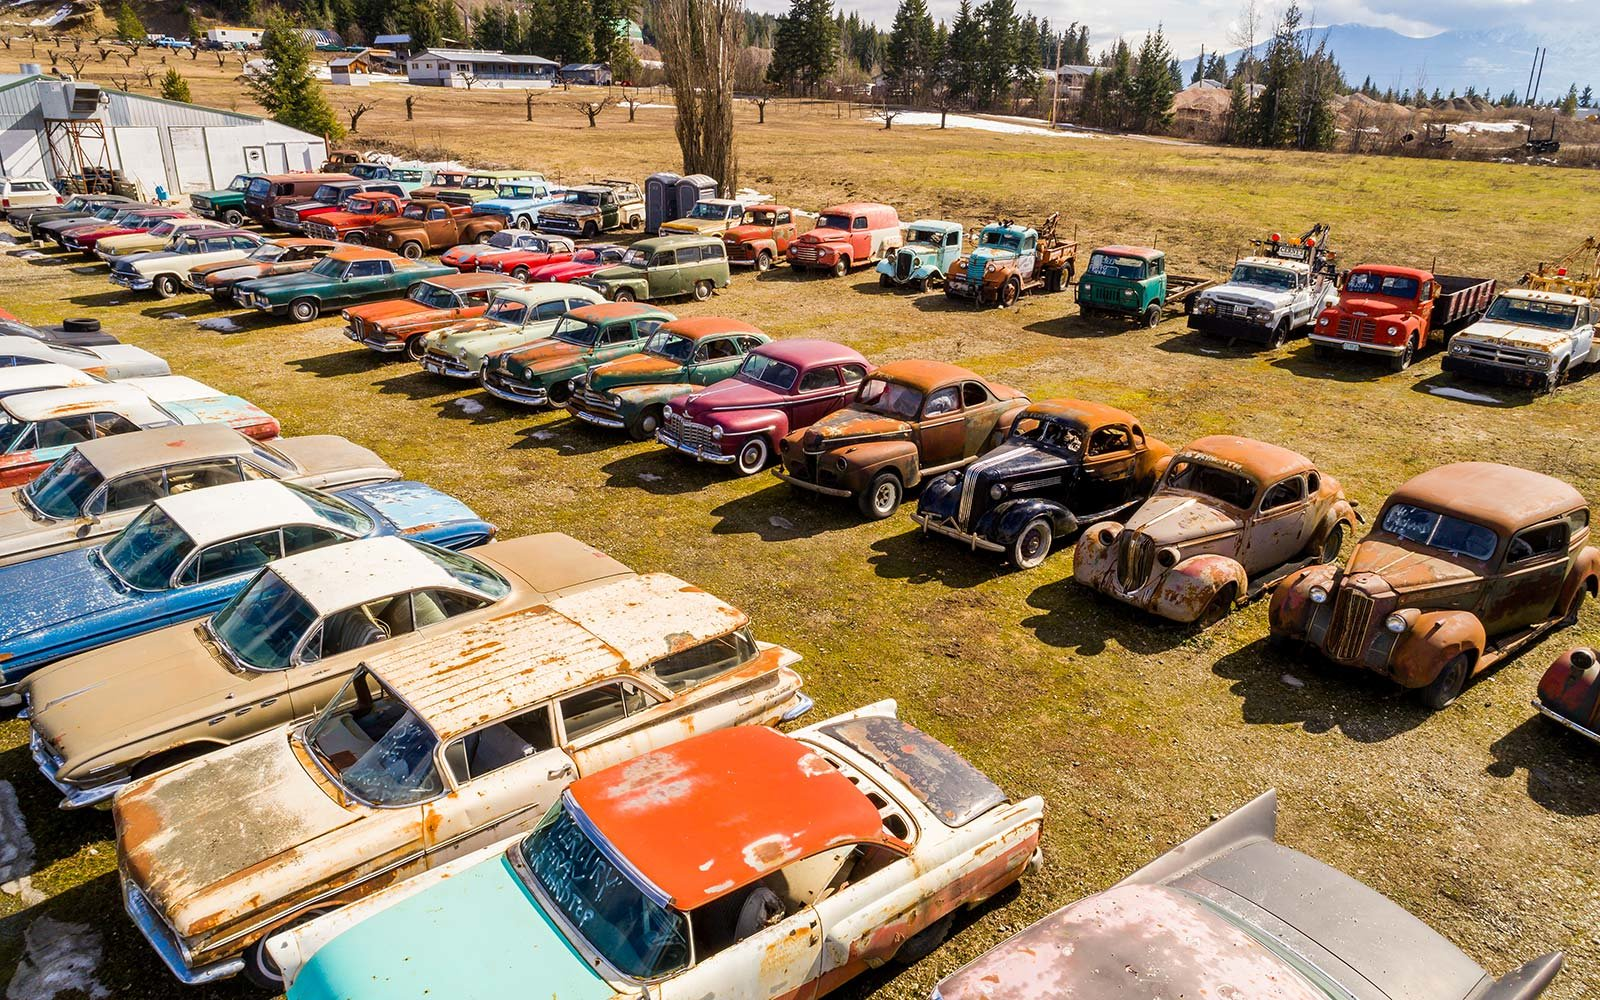 How To Move To Canada And Live In A Vintage Car Cemetery